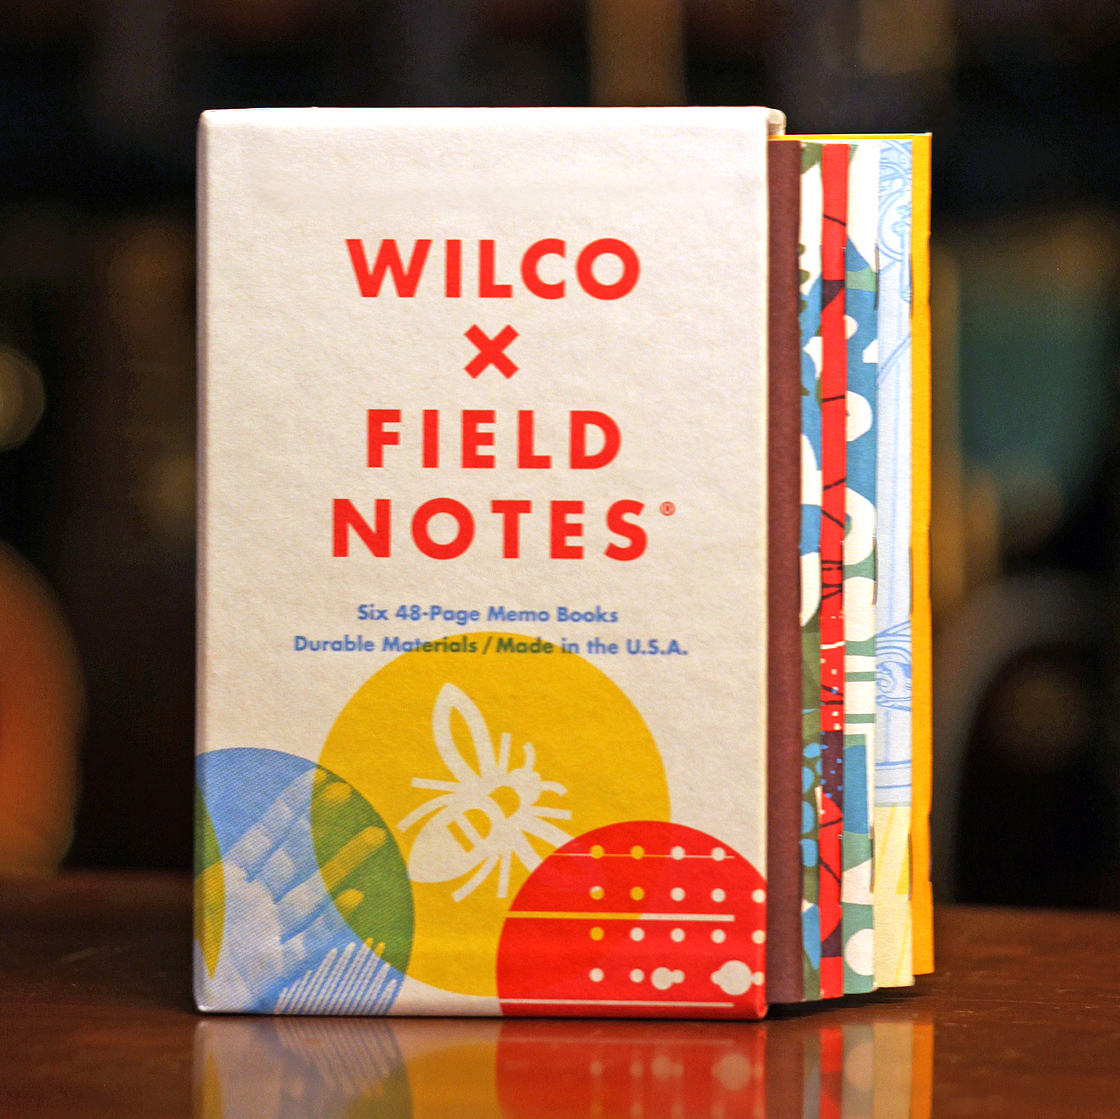 These Field Notes x Wilco notebooks are not trying to break your heart